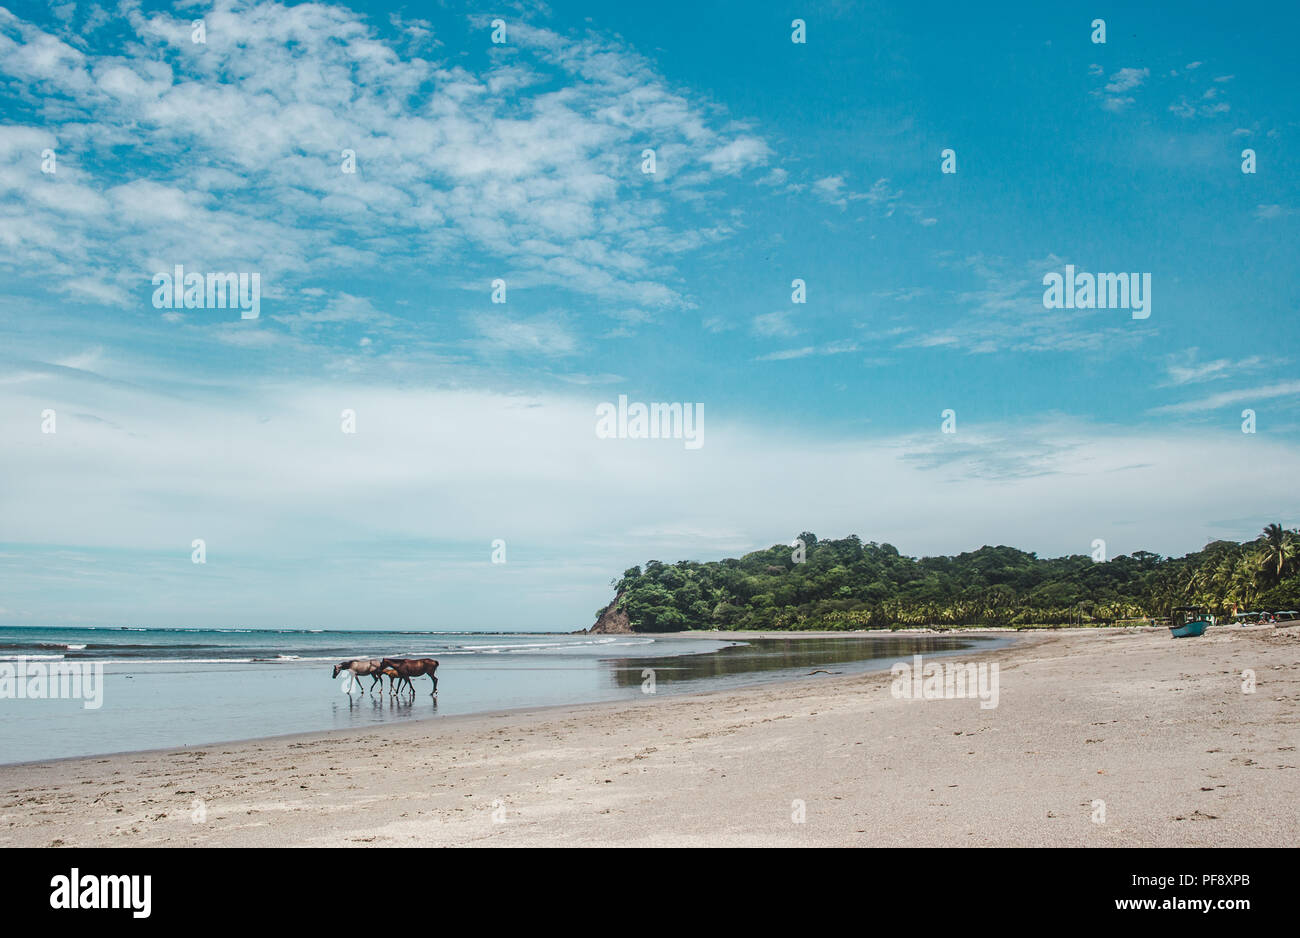 Wild horses of Sámara, Costa Rica cool down from a hot day in the shore of the Pacific Ocean - Stock Image